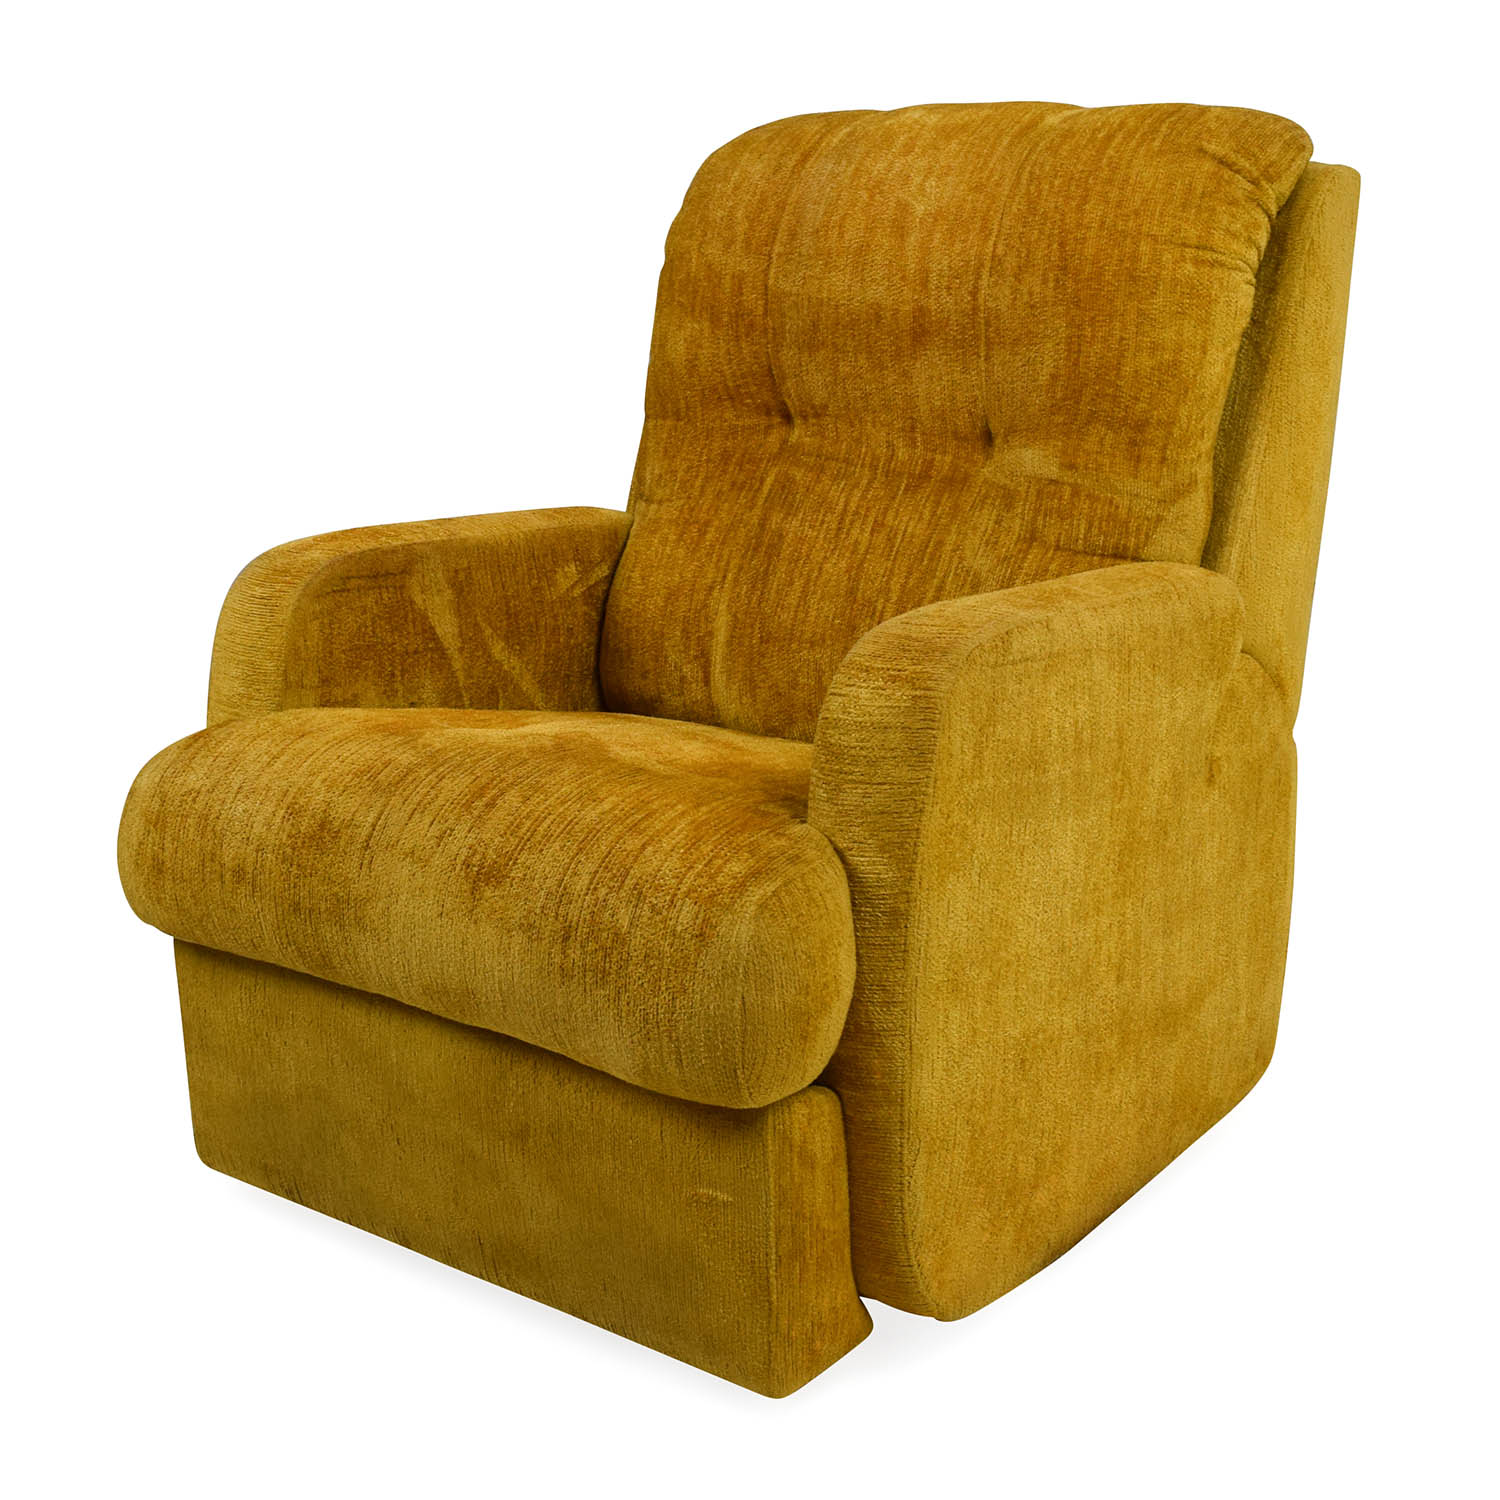 ... Unknown Brand Yellow Recliner Chair Nj ...